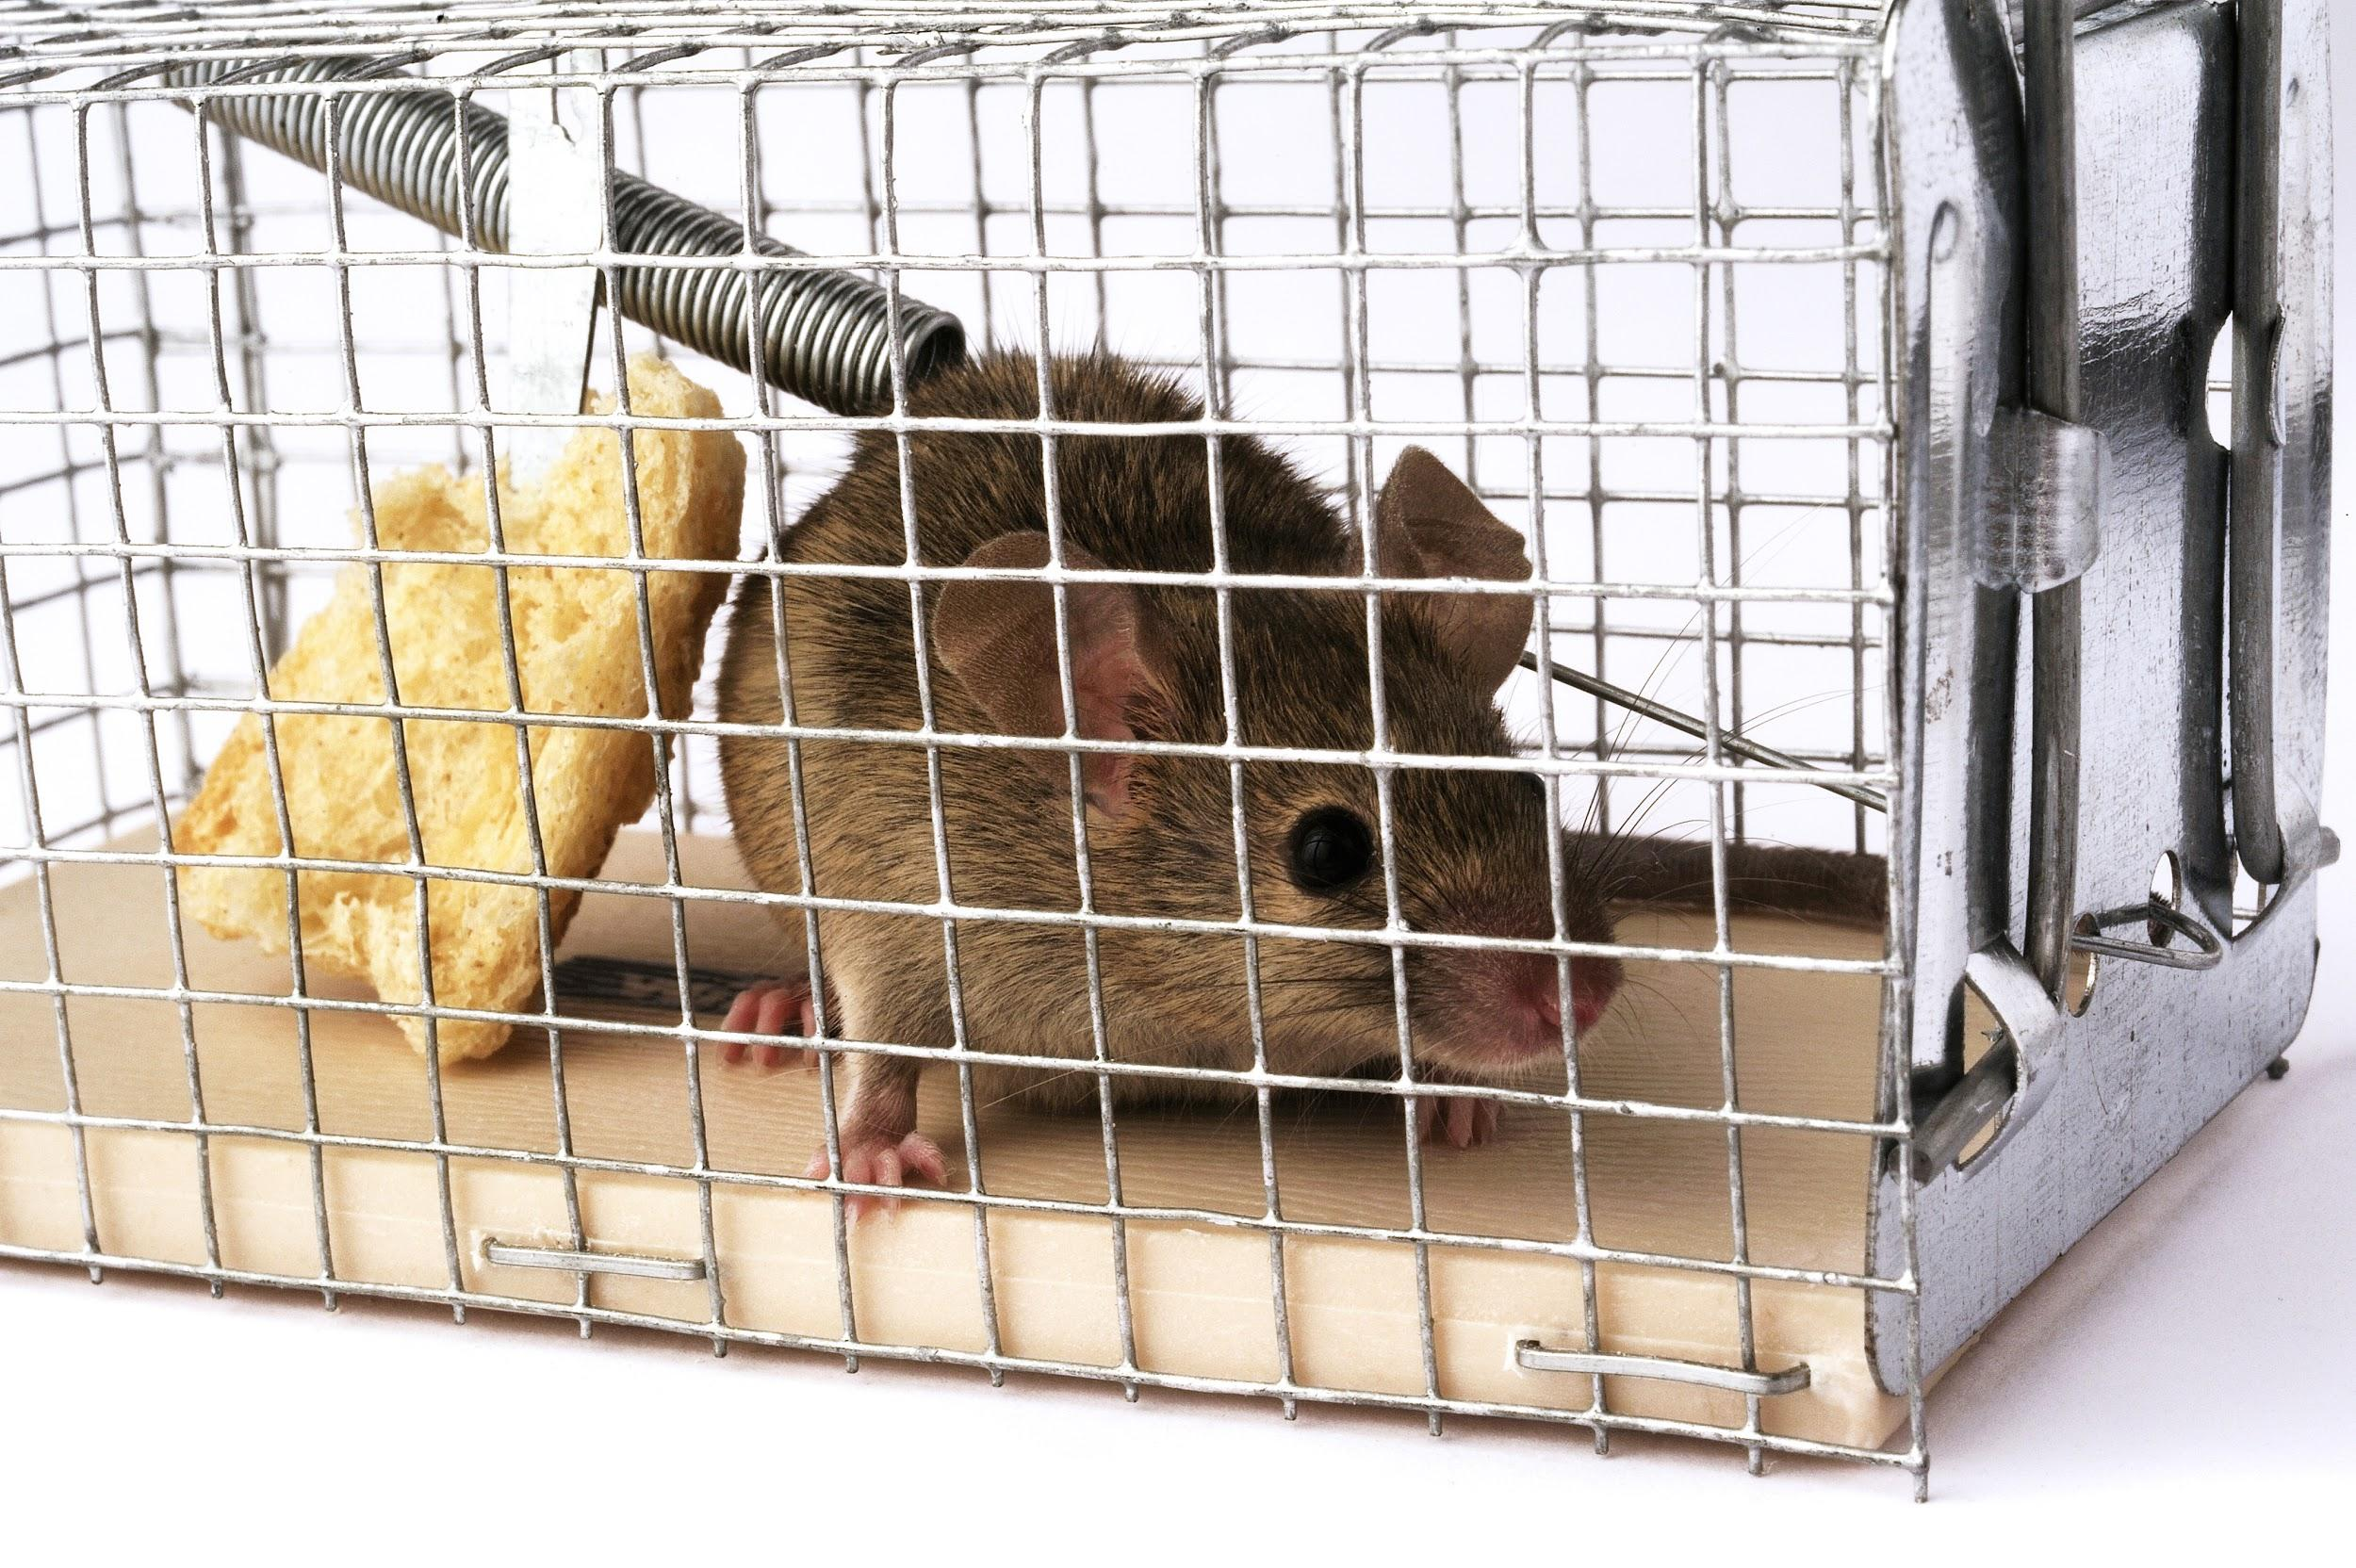 Rodent Solutions Pro - Rodent Proofing | Attic Insulation Removal Oakland, CA image 6